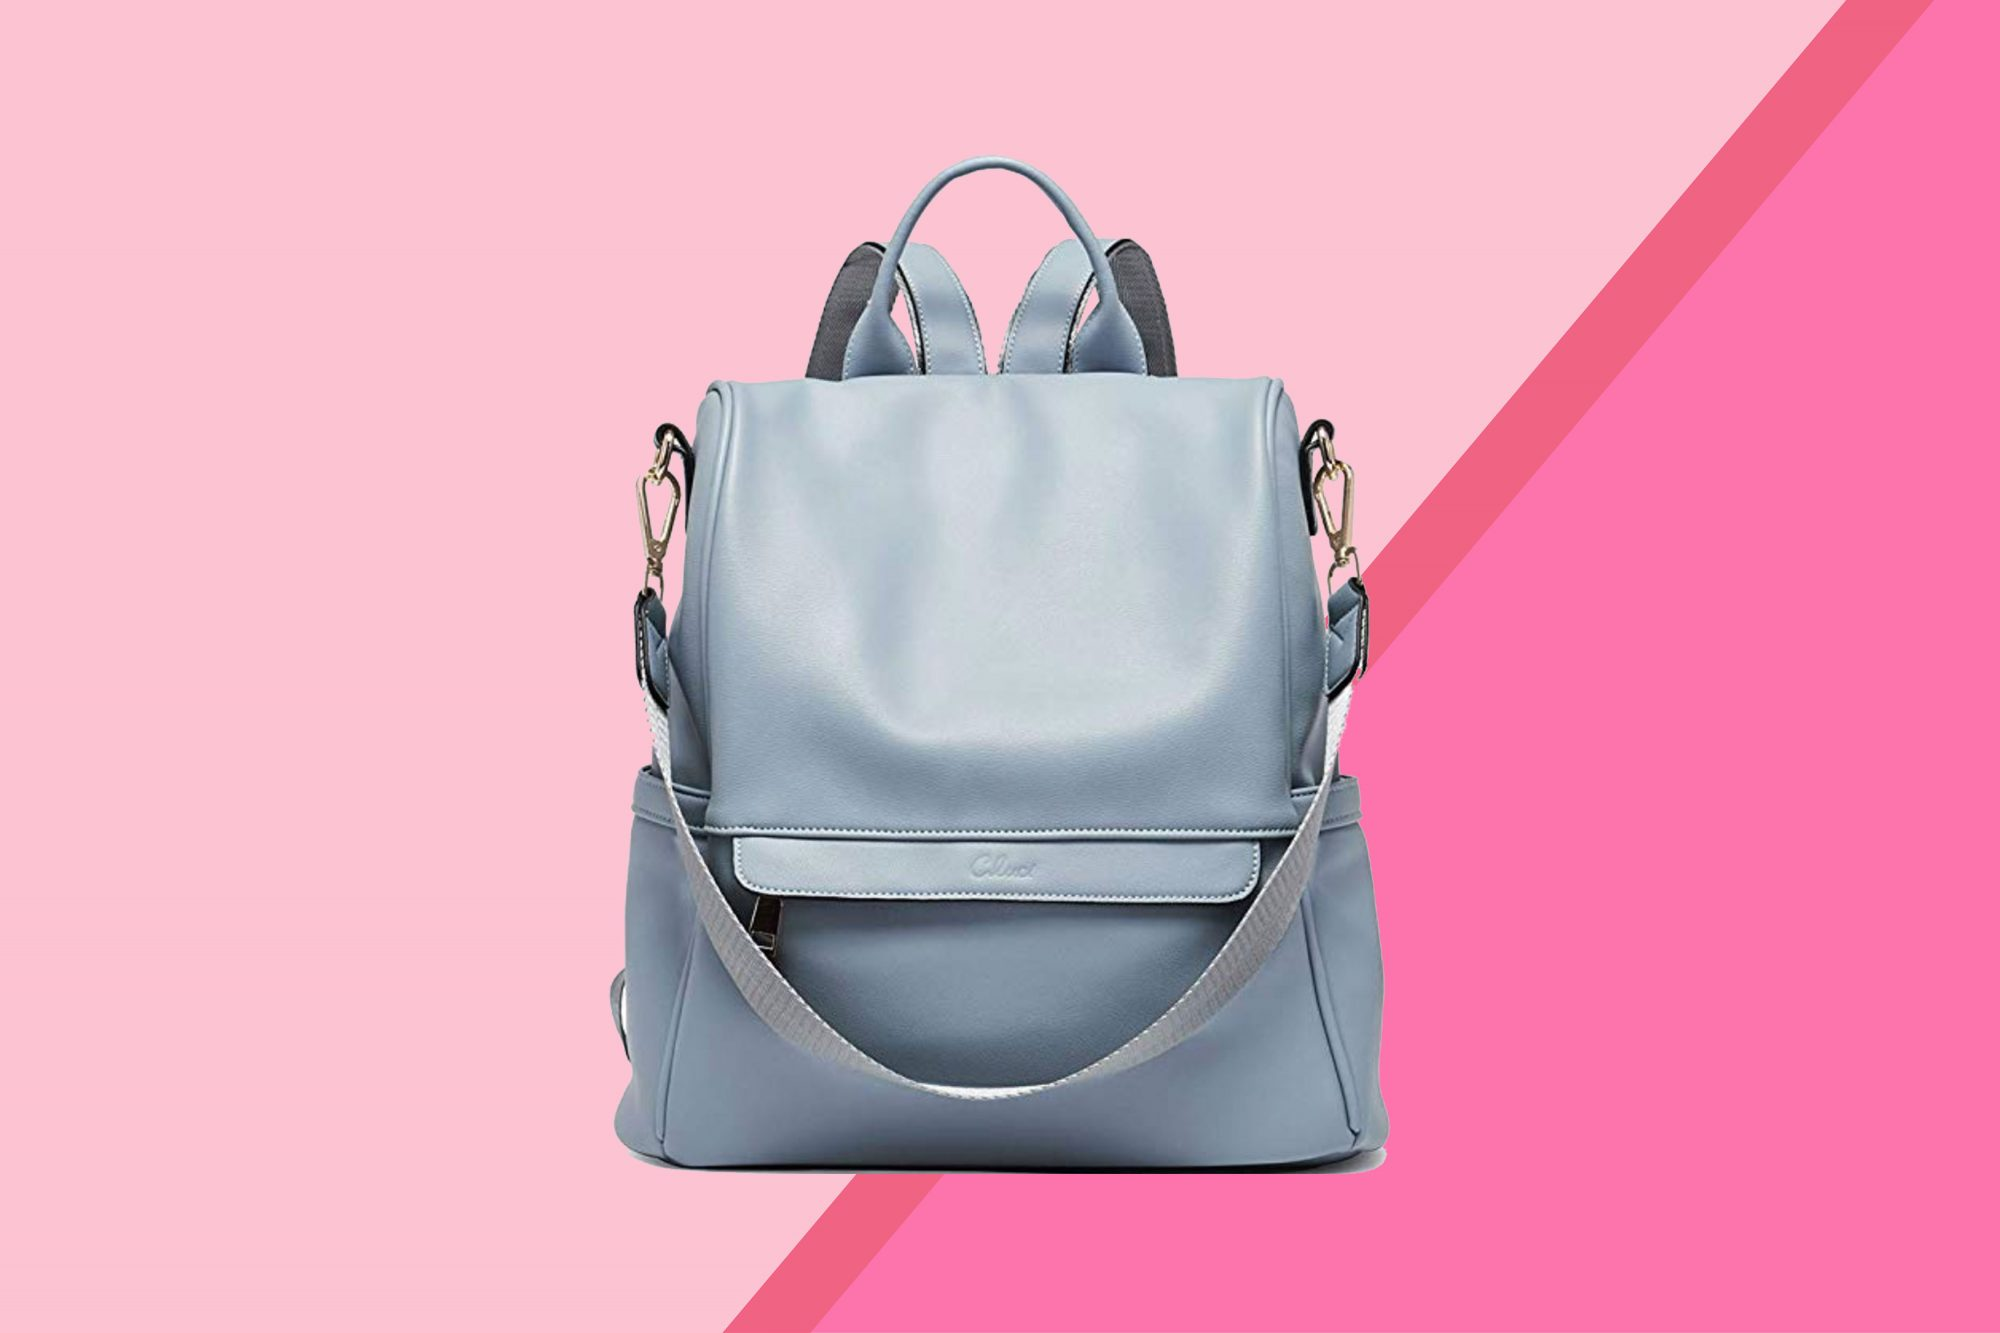 8552f1fff740 This $37 Tote Converts Into a Backpack and Shoulder Bag | Real Simple